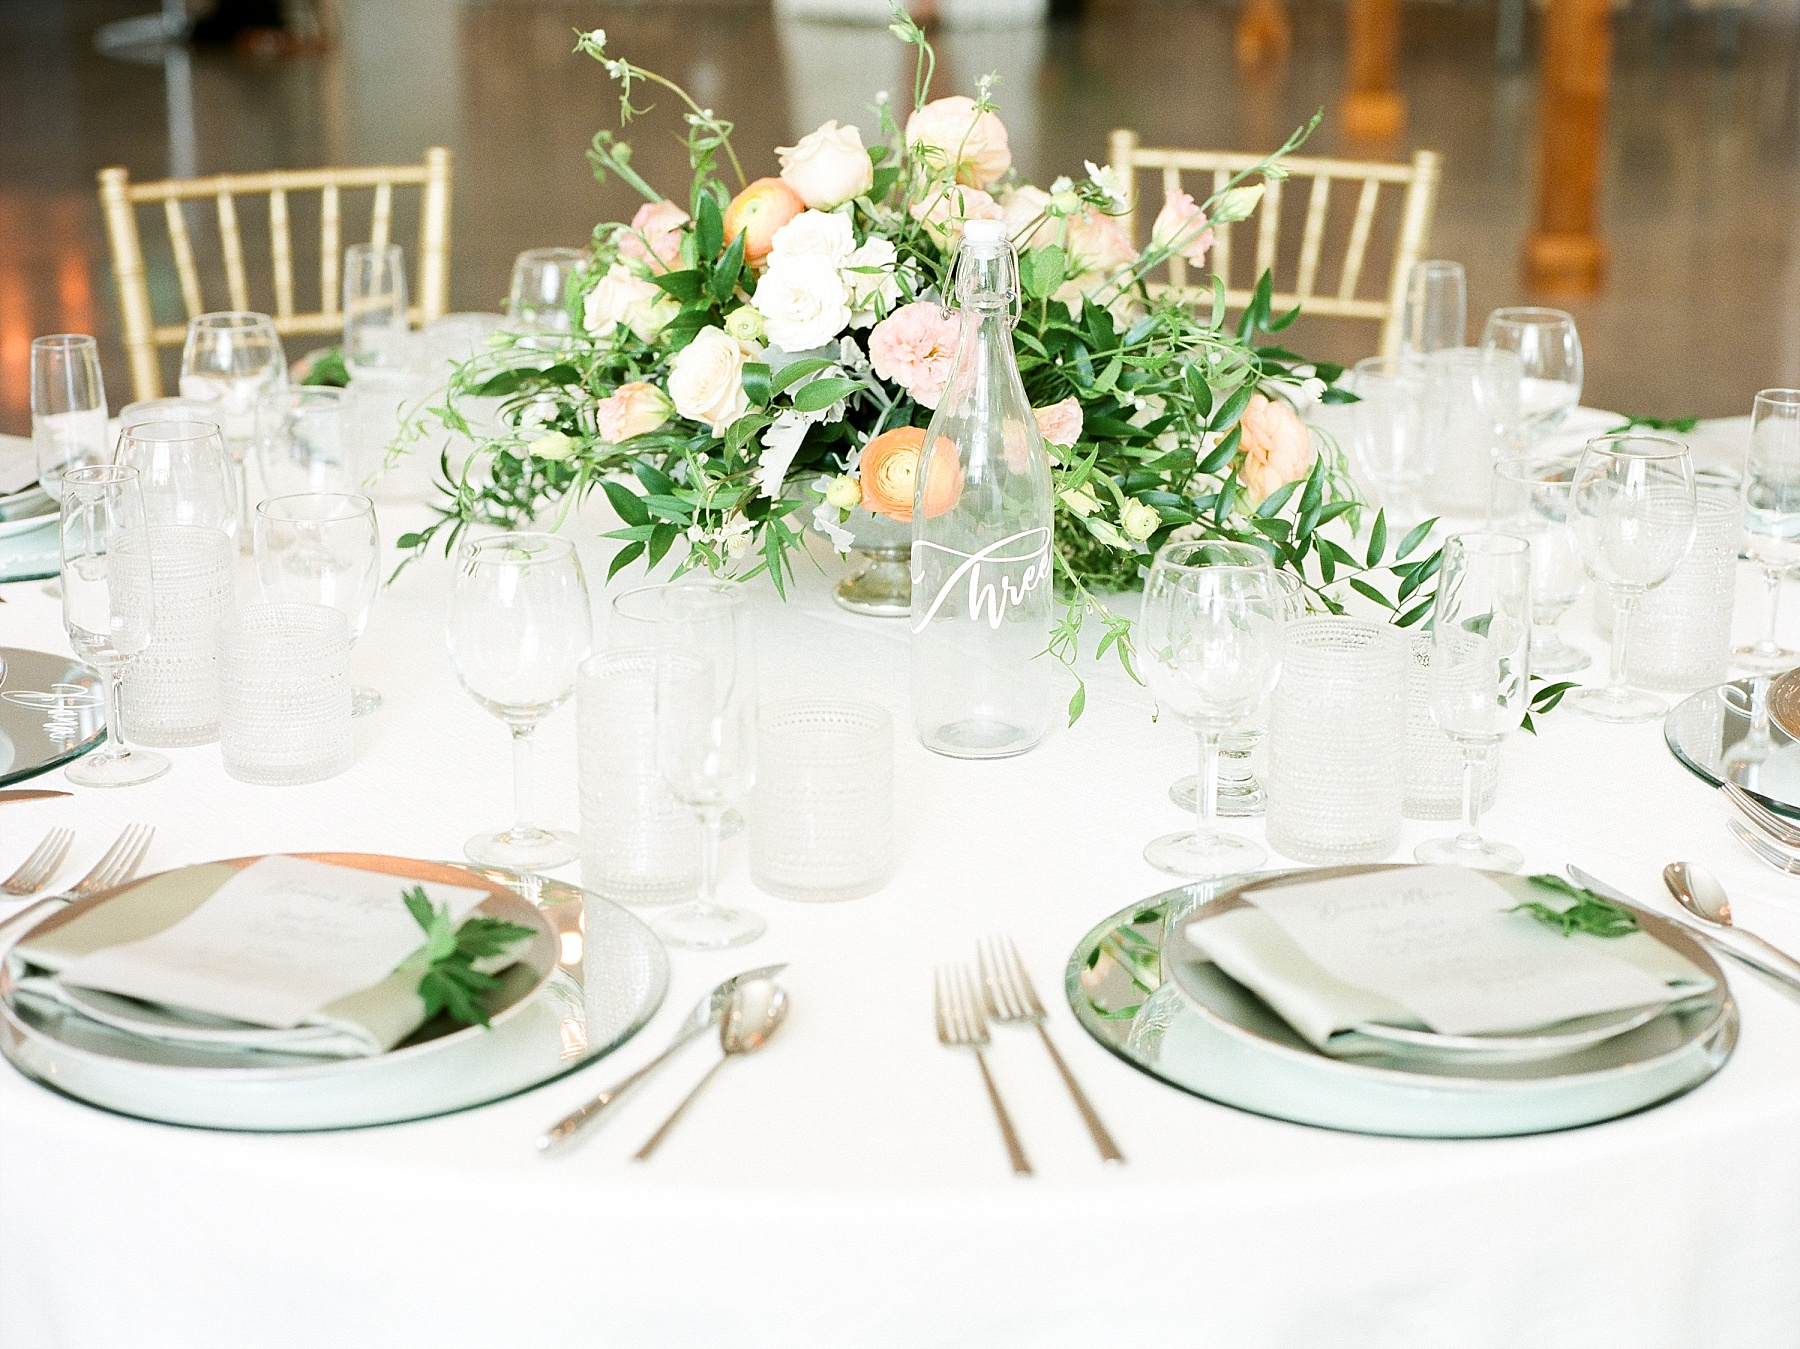 Textural Organic Wedding in All White Venue by Kelsi Kliethermes Wedding Photographer - Missouri, Midwest, and Destinations_0087.jpg